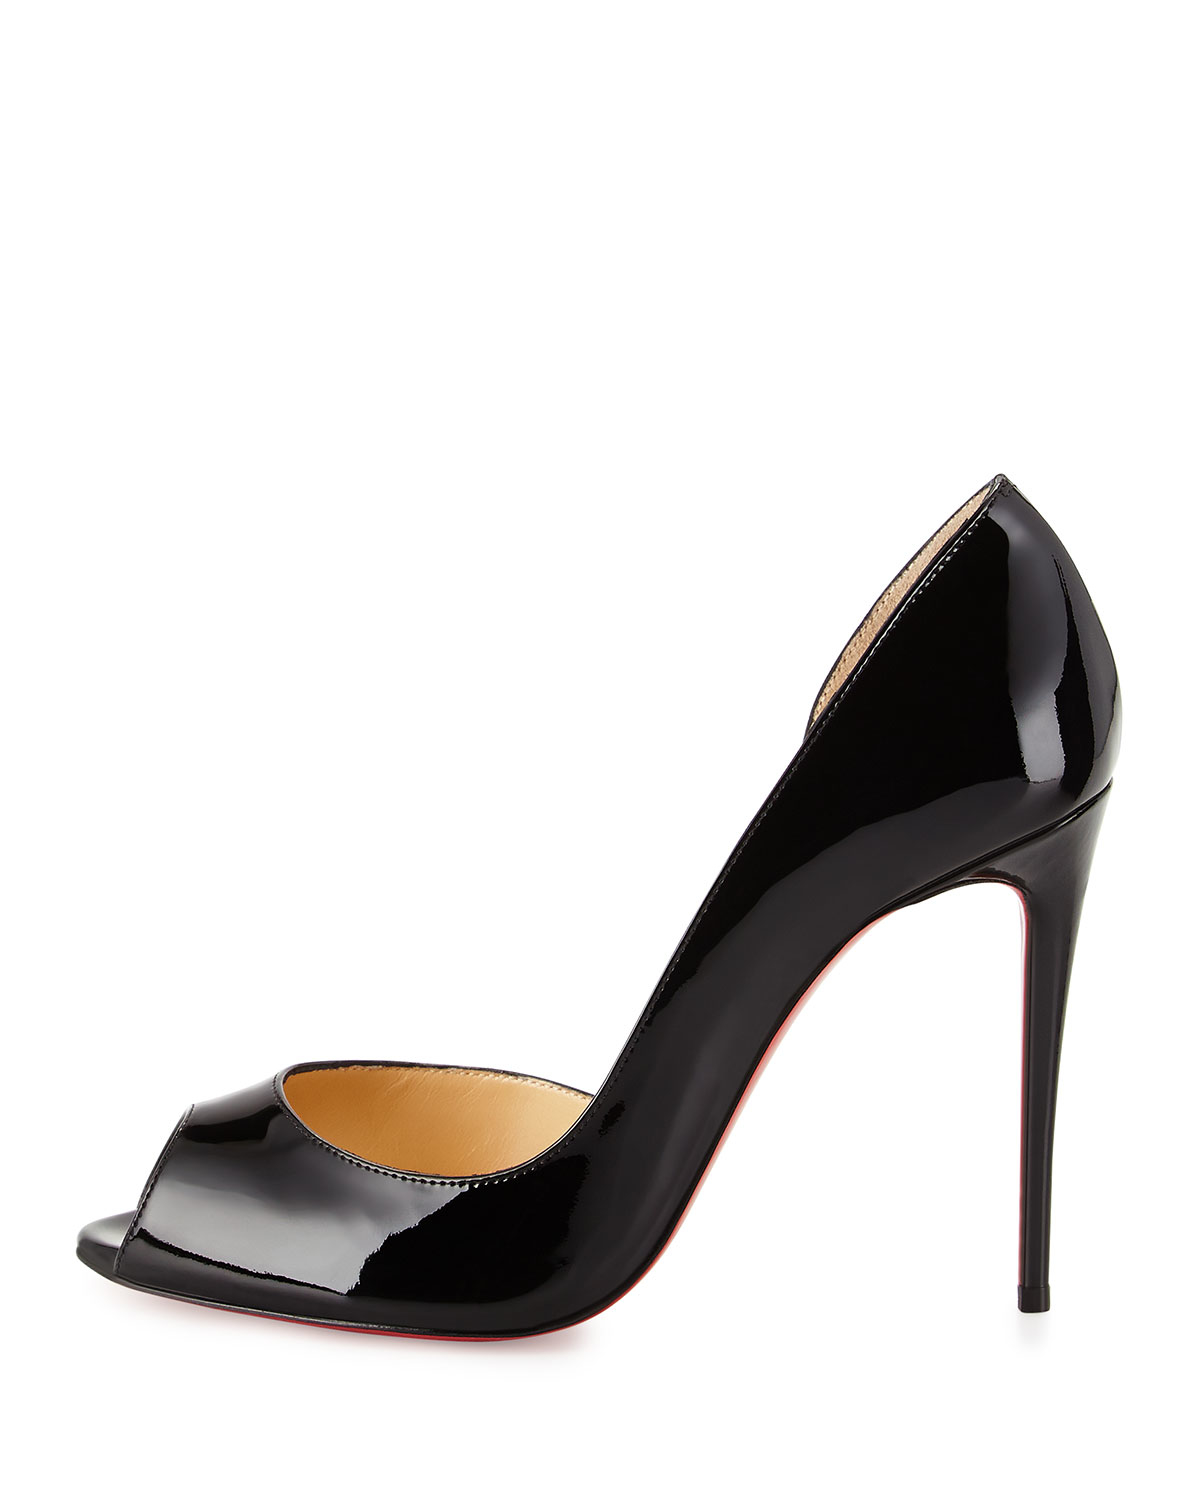 new styles c51f2 1fbaf Christian Louboutin Black Demi You Peep-Toe Leather Red-Sole Pump